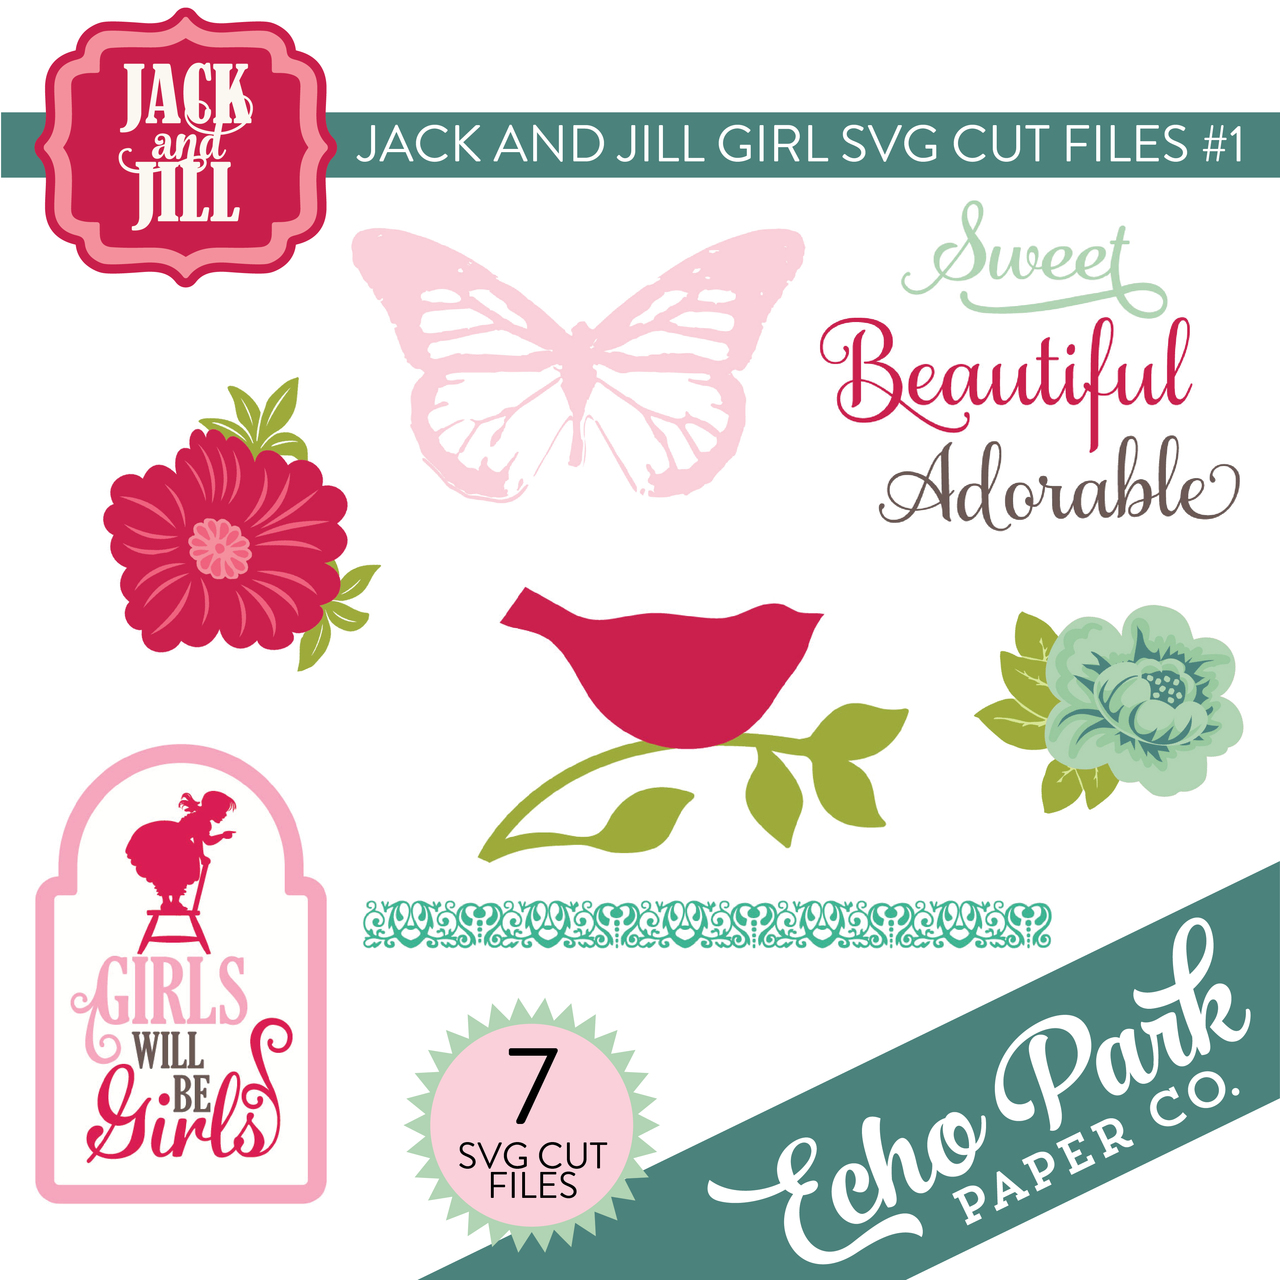 Jack and Jill - Girl SVG Cut Files #1